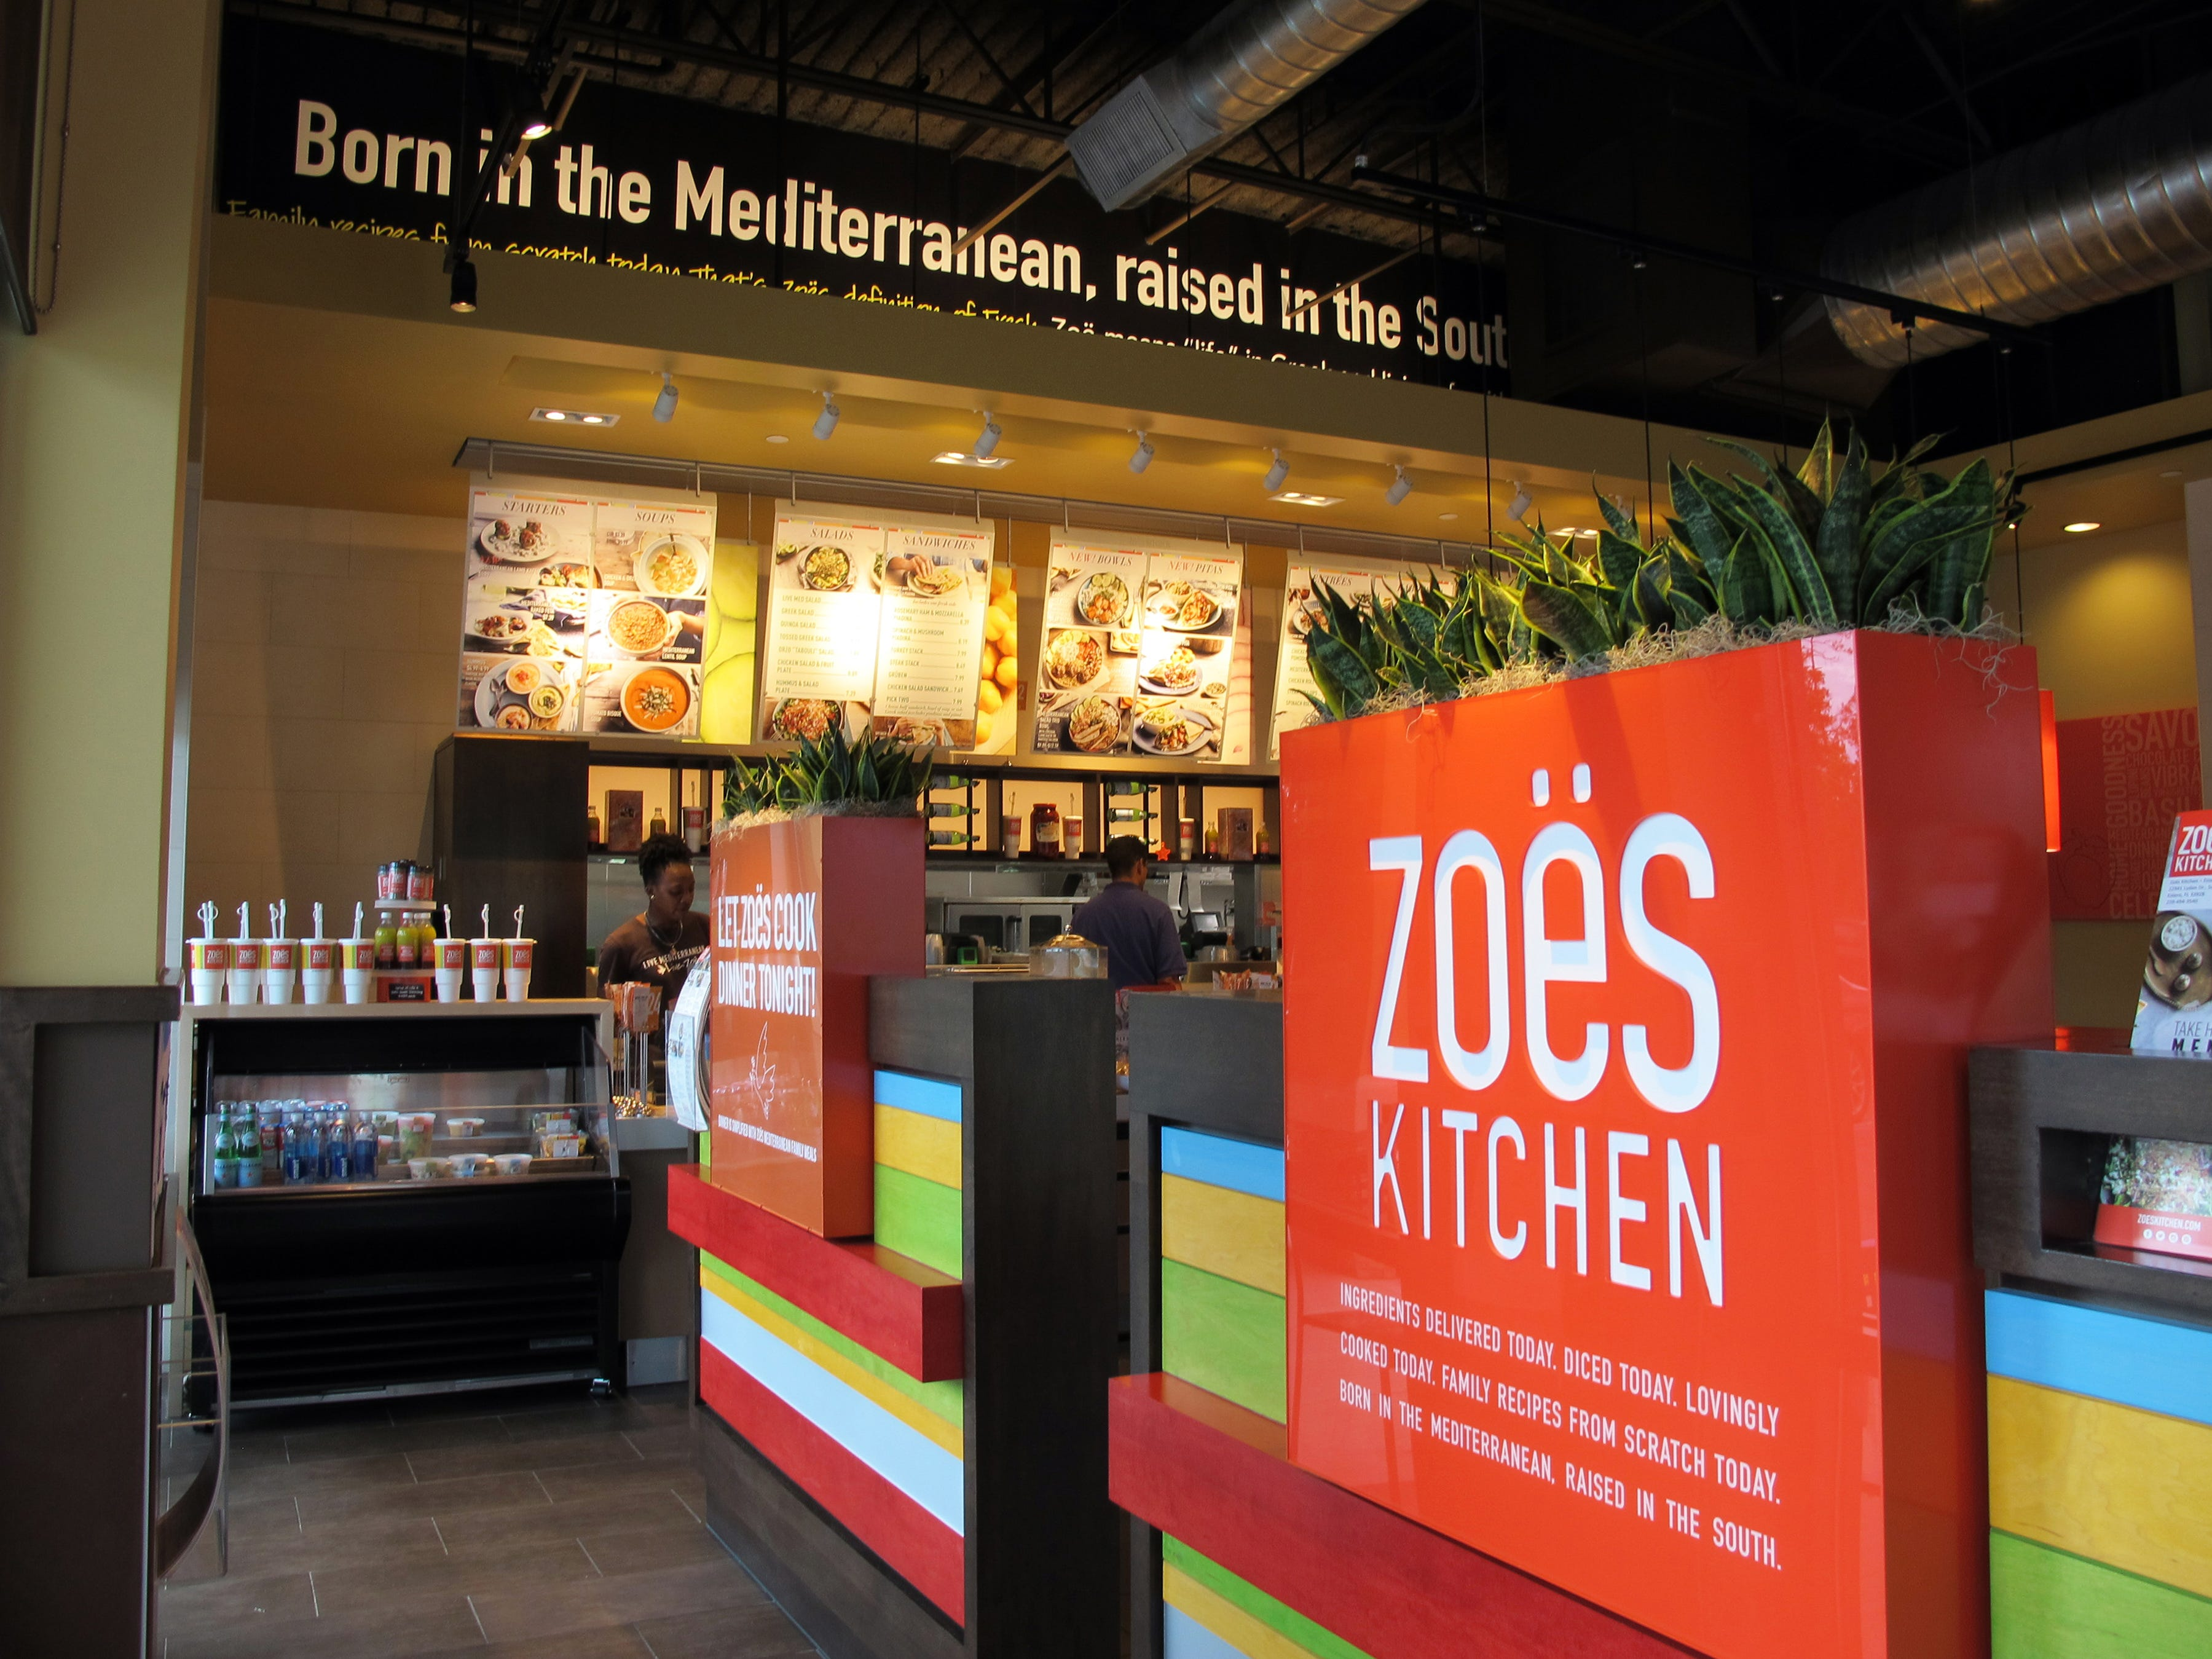 Zoës Kitchen opened another location in the region in 2018 at the new Daniels Marketplace in south Fort Myers.